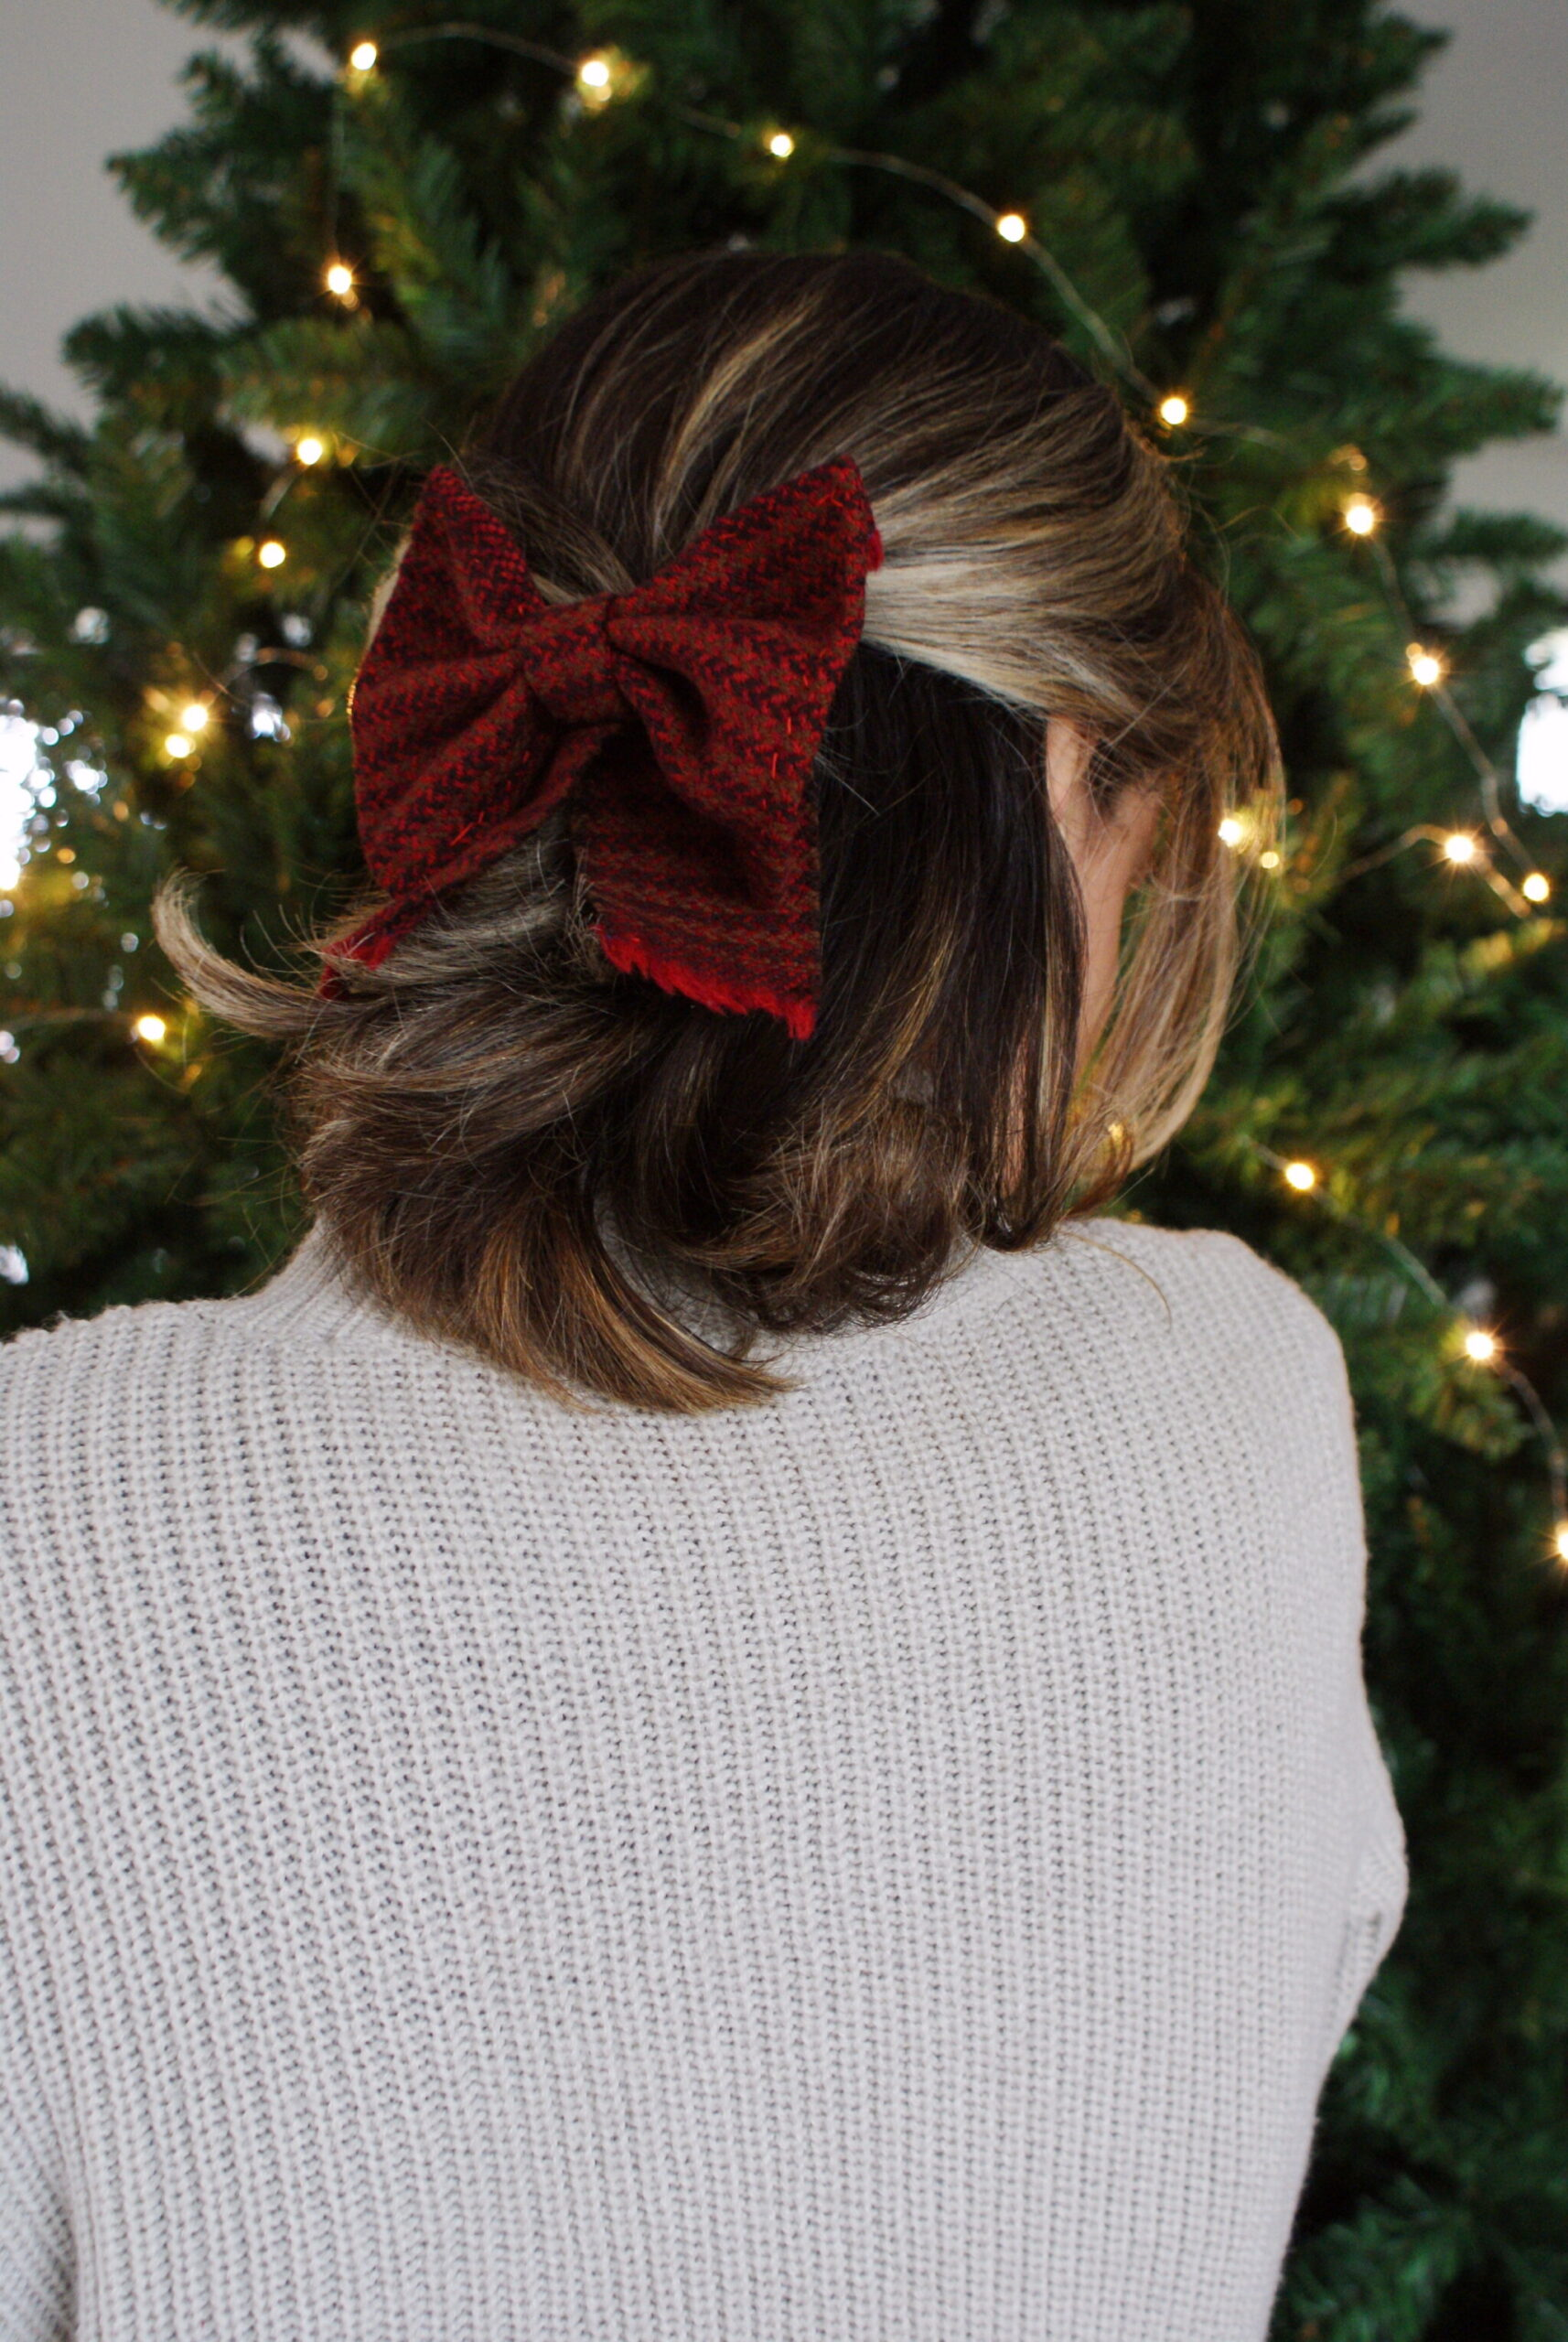 diy tartan bow hair clip easy handmade accessory festive outfits christmas tutorial fall